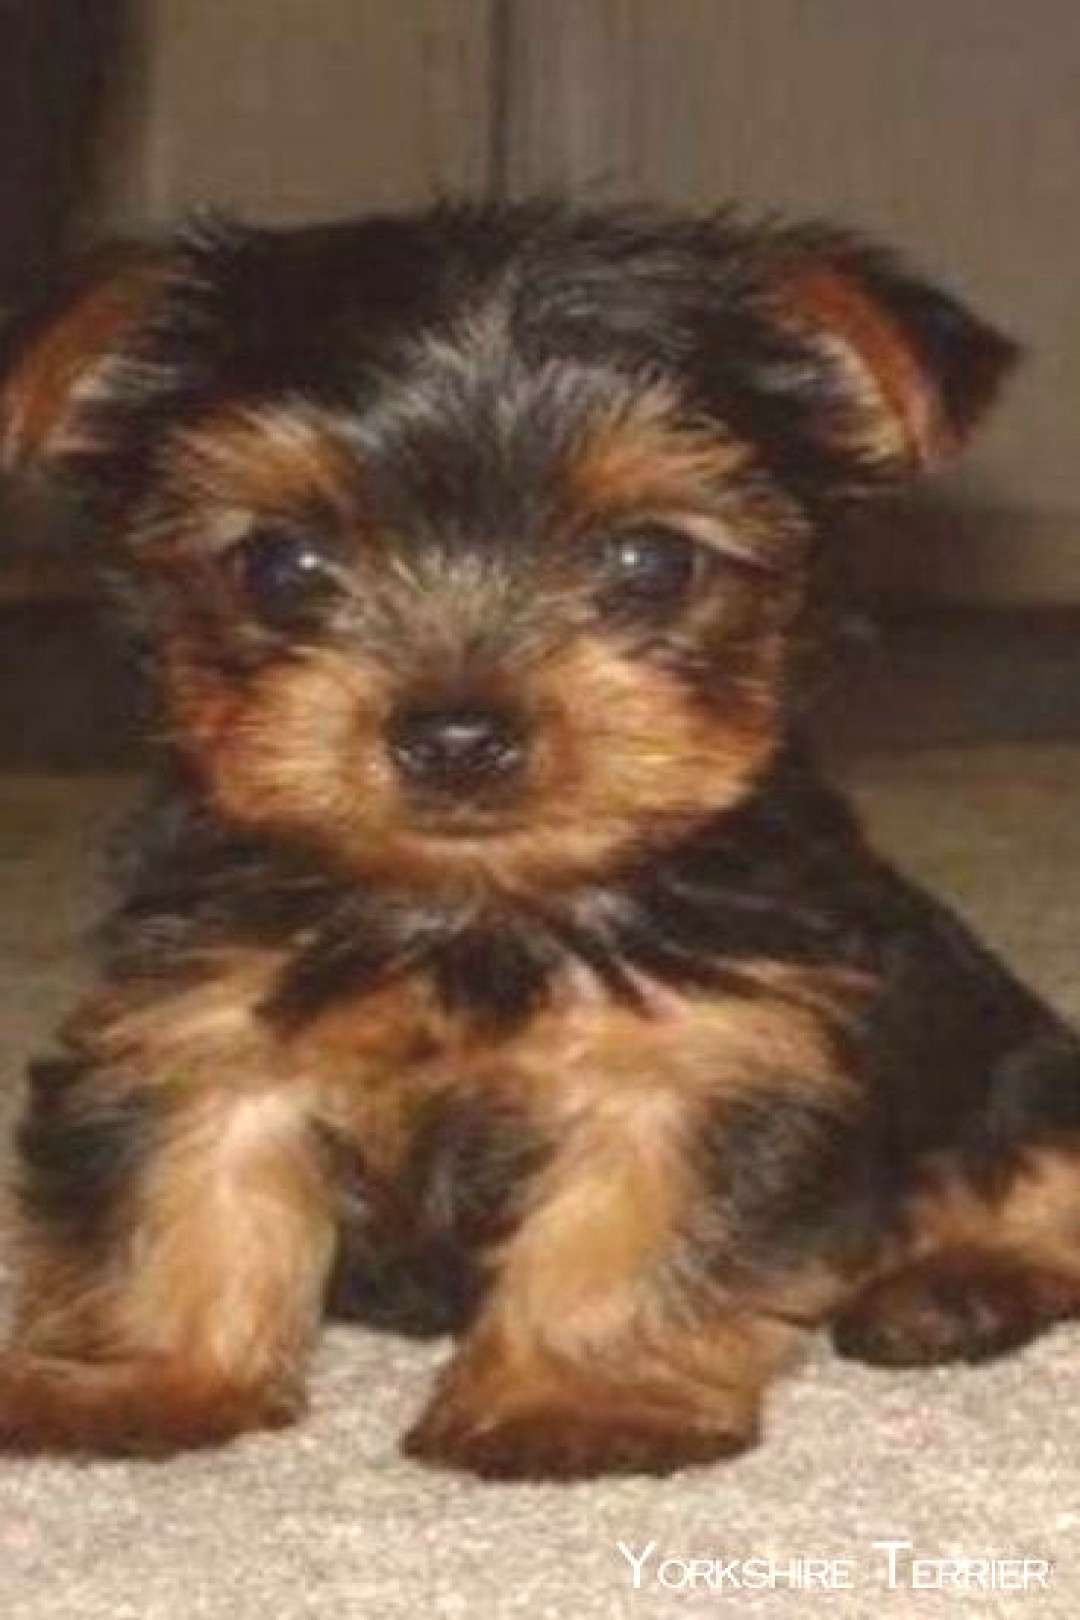 Yorkshireterriersnapy Yorkshireterrierswag Terriersm In 2020 Yorkshire Terrier Puppies Yorkshire Terrier Puppy Yorkie Yorkie Yorkshire Terrier